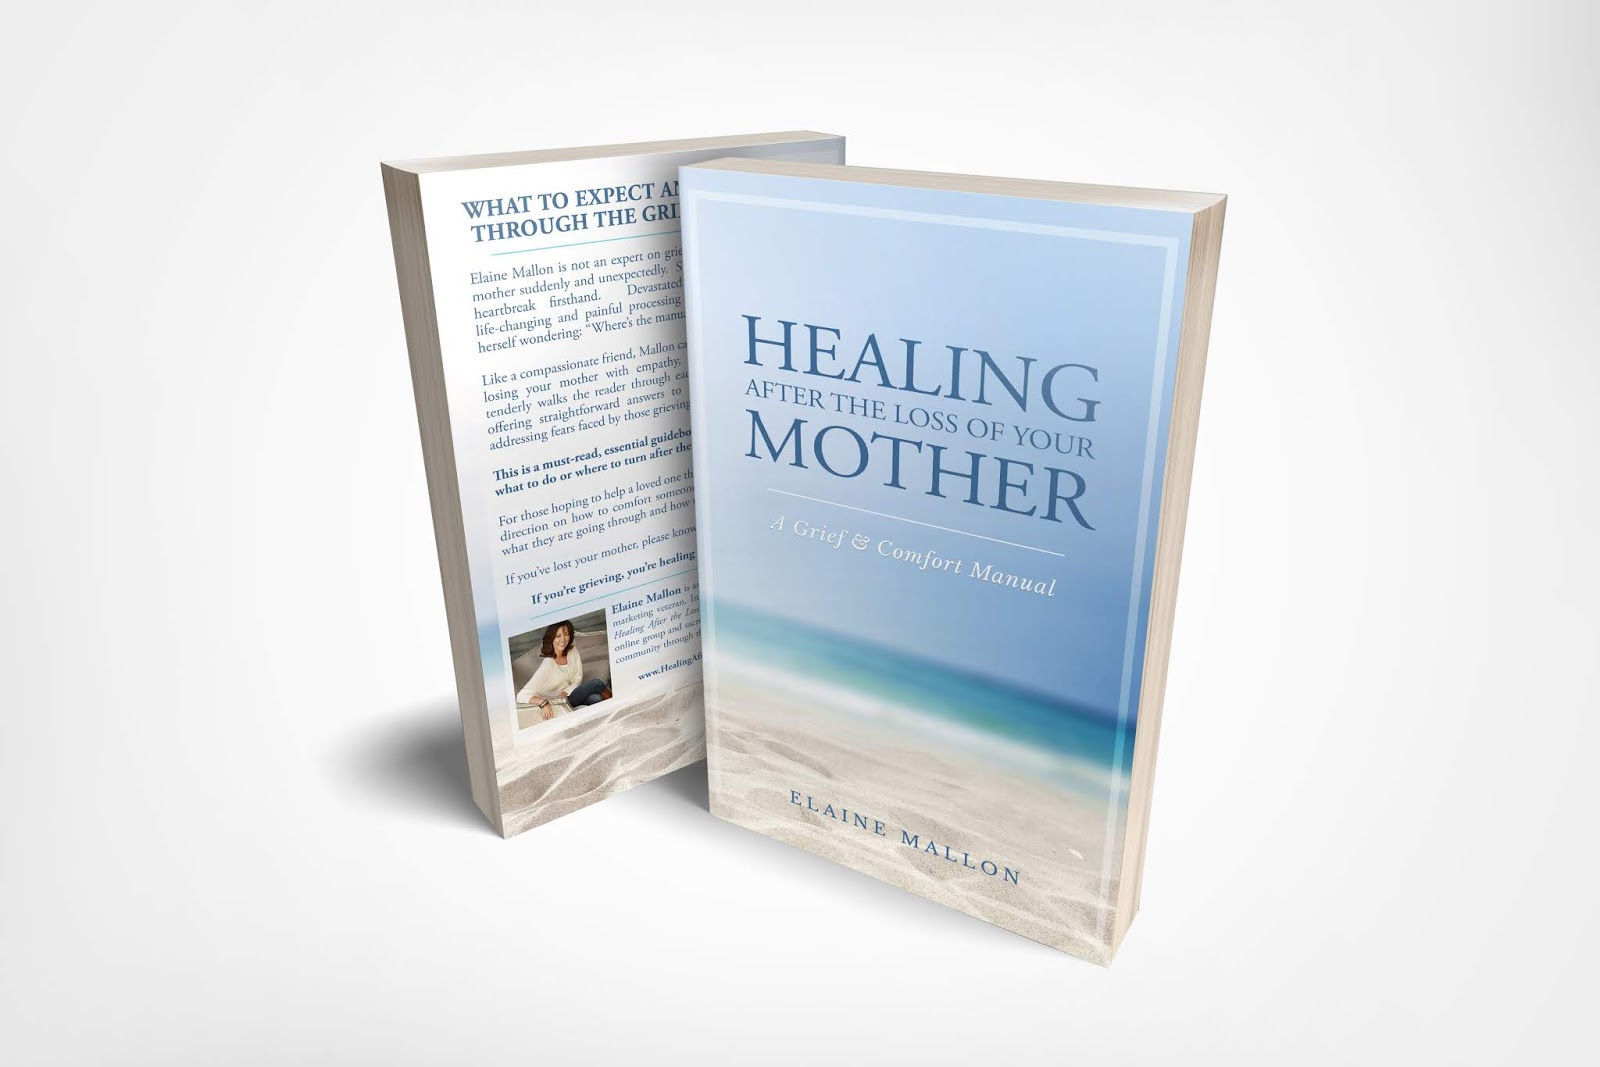 Healing After the Loss of Your Mother: A Grief & Comfort